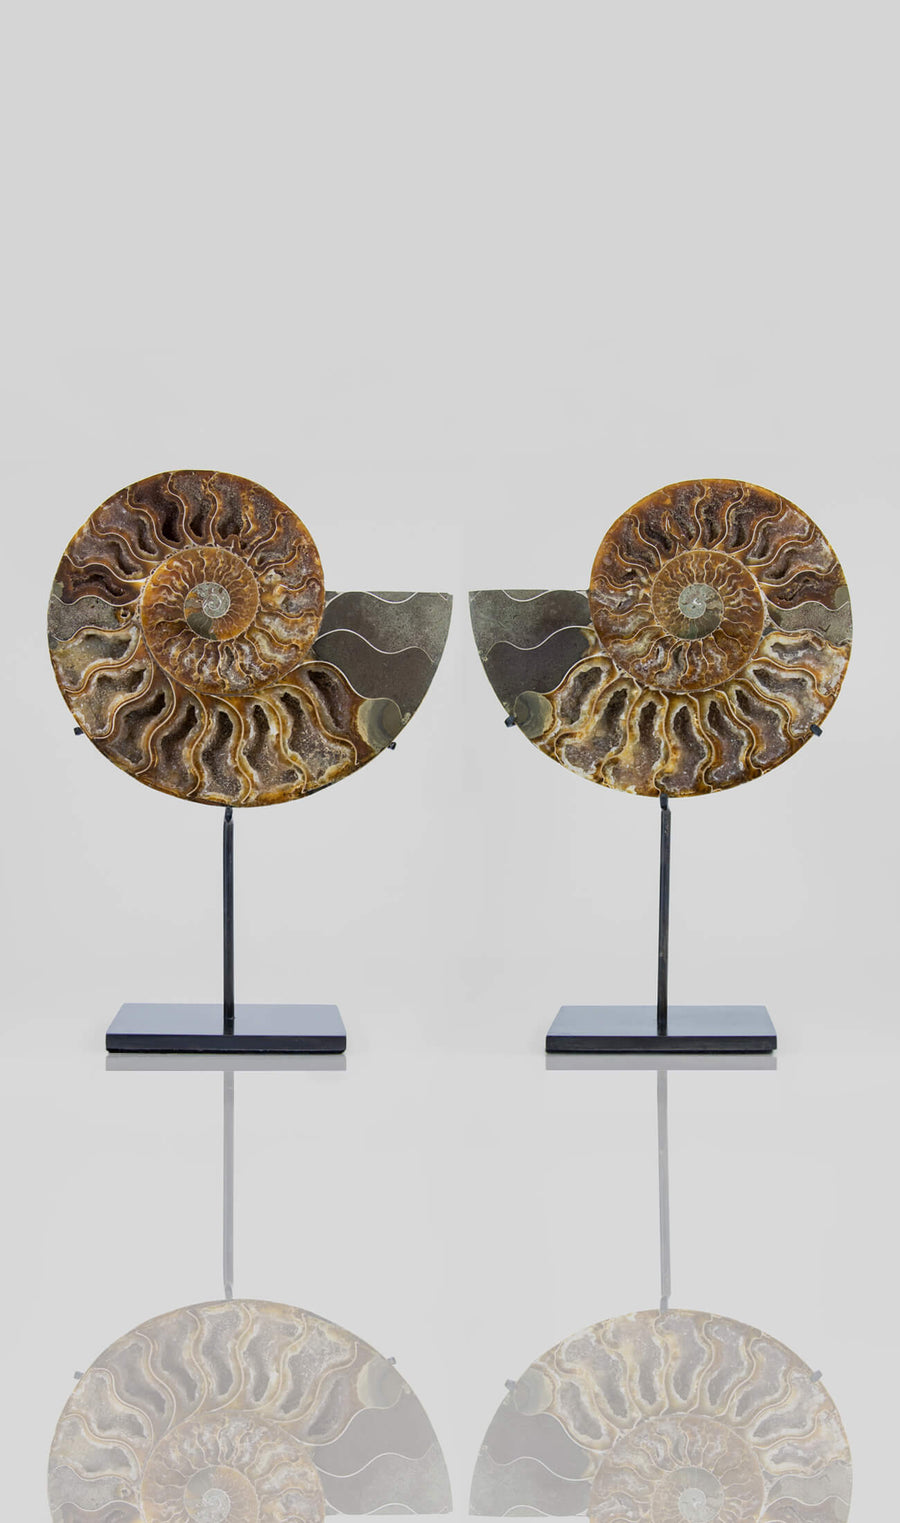 Cleoniceras Ammonite Pairs on Bronze Stands Measuring 262mm